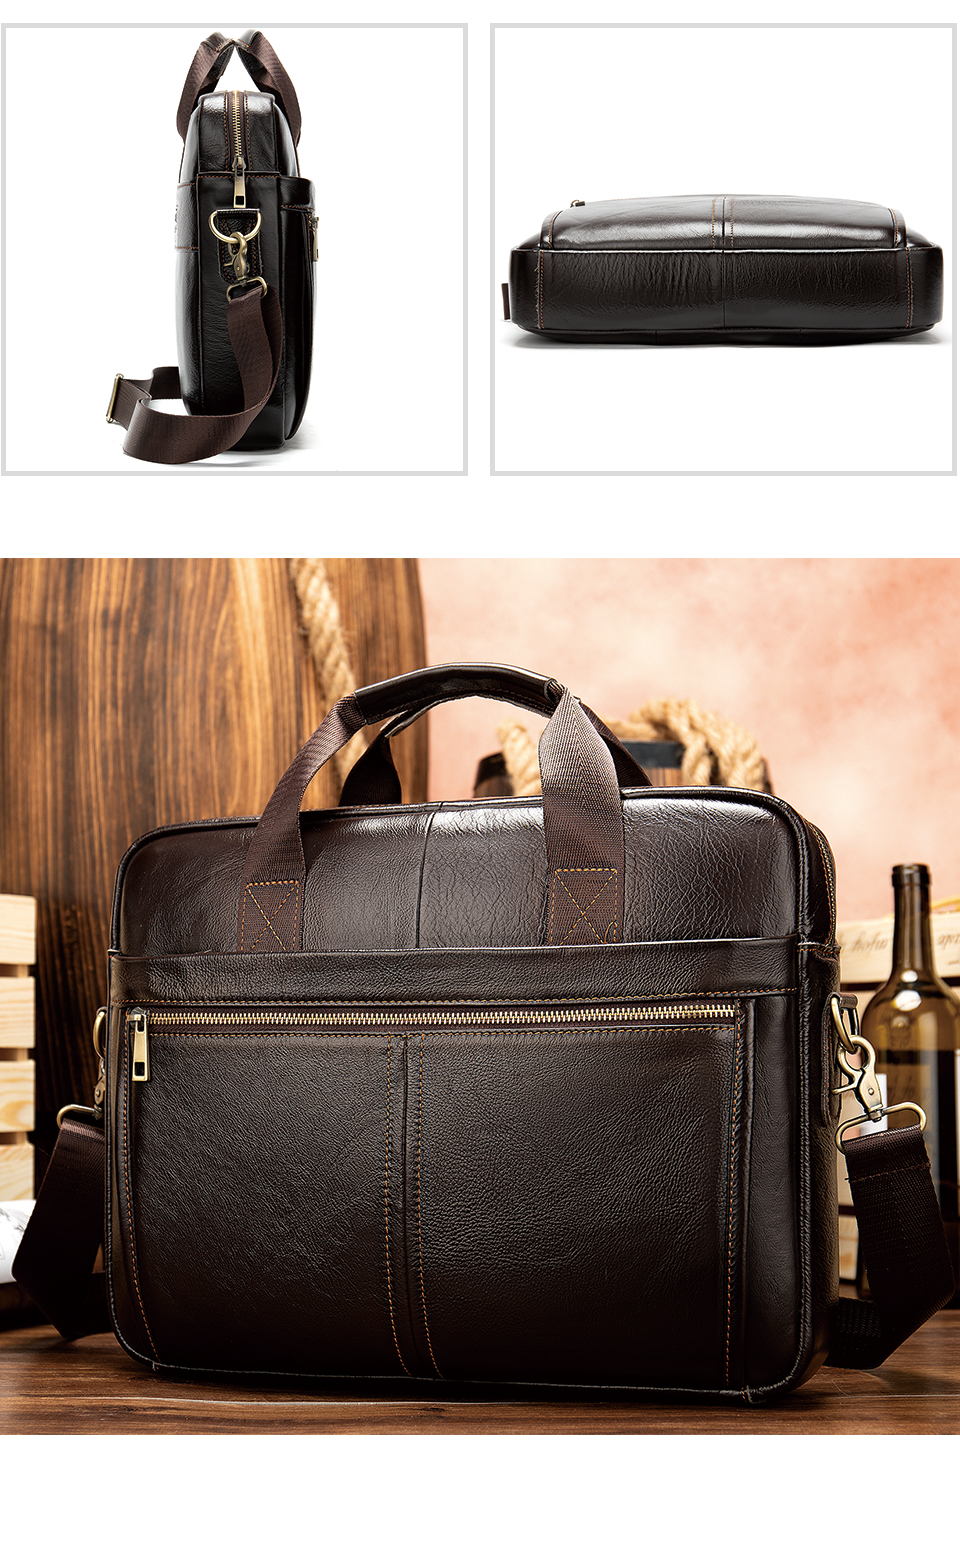 WESTAL Men's Briefcase Men's Bag Genuine Leather Laptop Bag Leather Computer/Office Bags for Men Document Briefcases Totes Bags